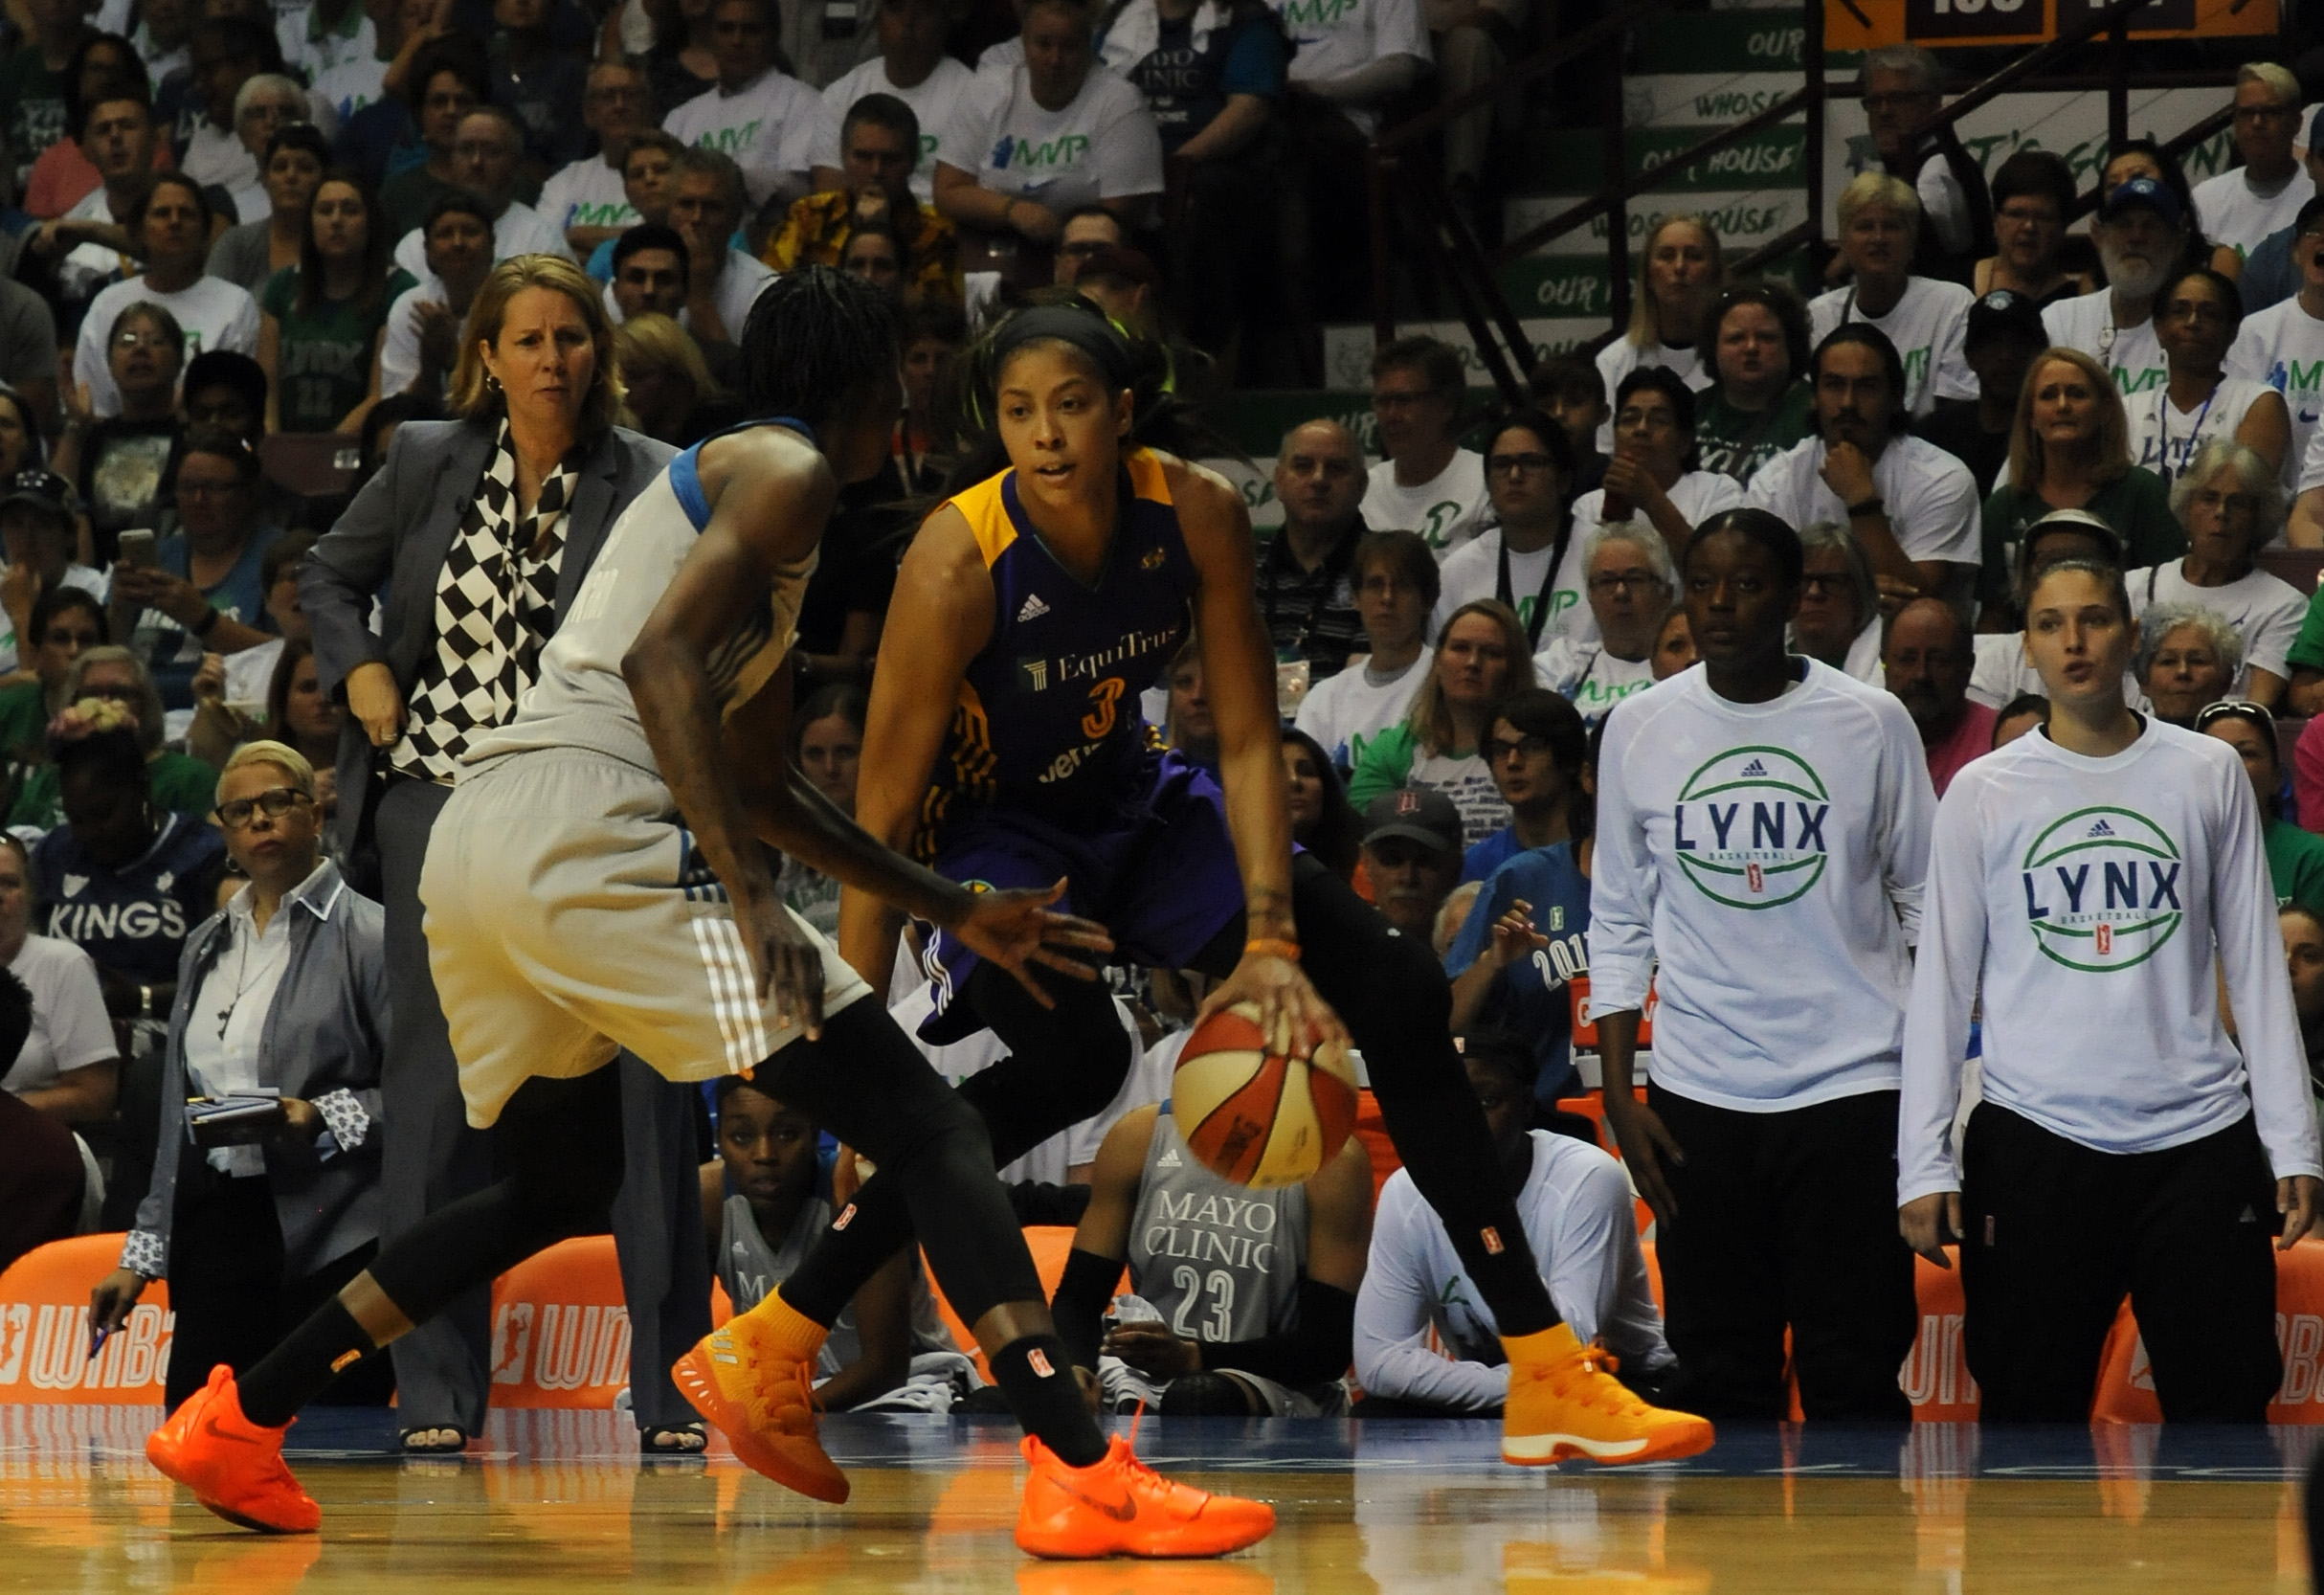 Lynx and Sparks preview Game 3 of the WNBA Finals